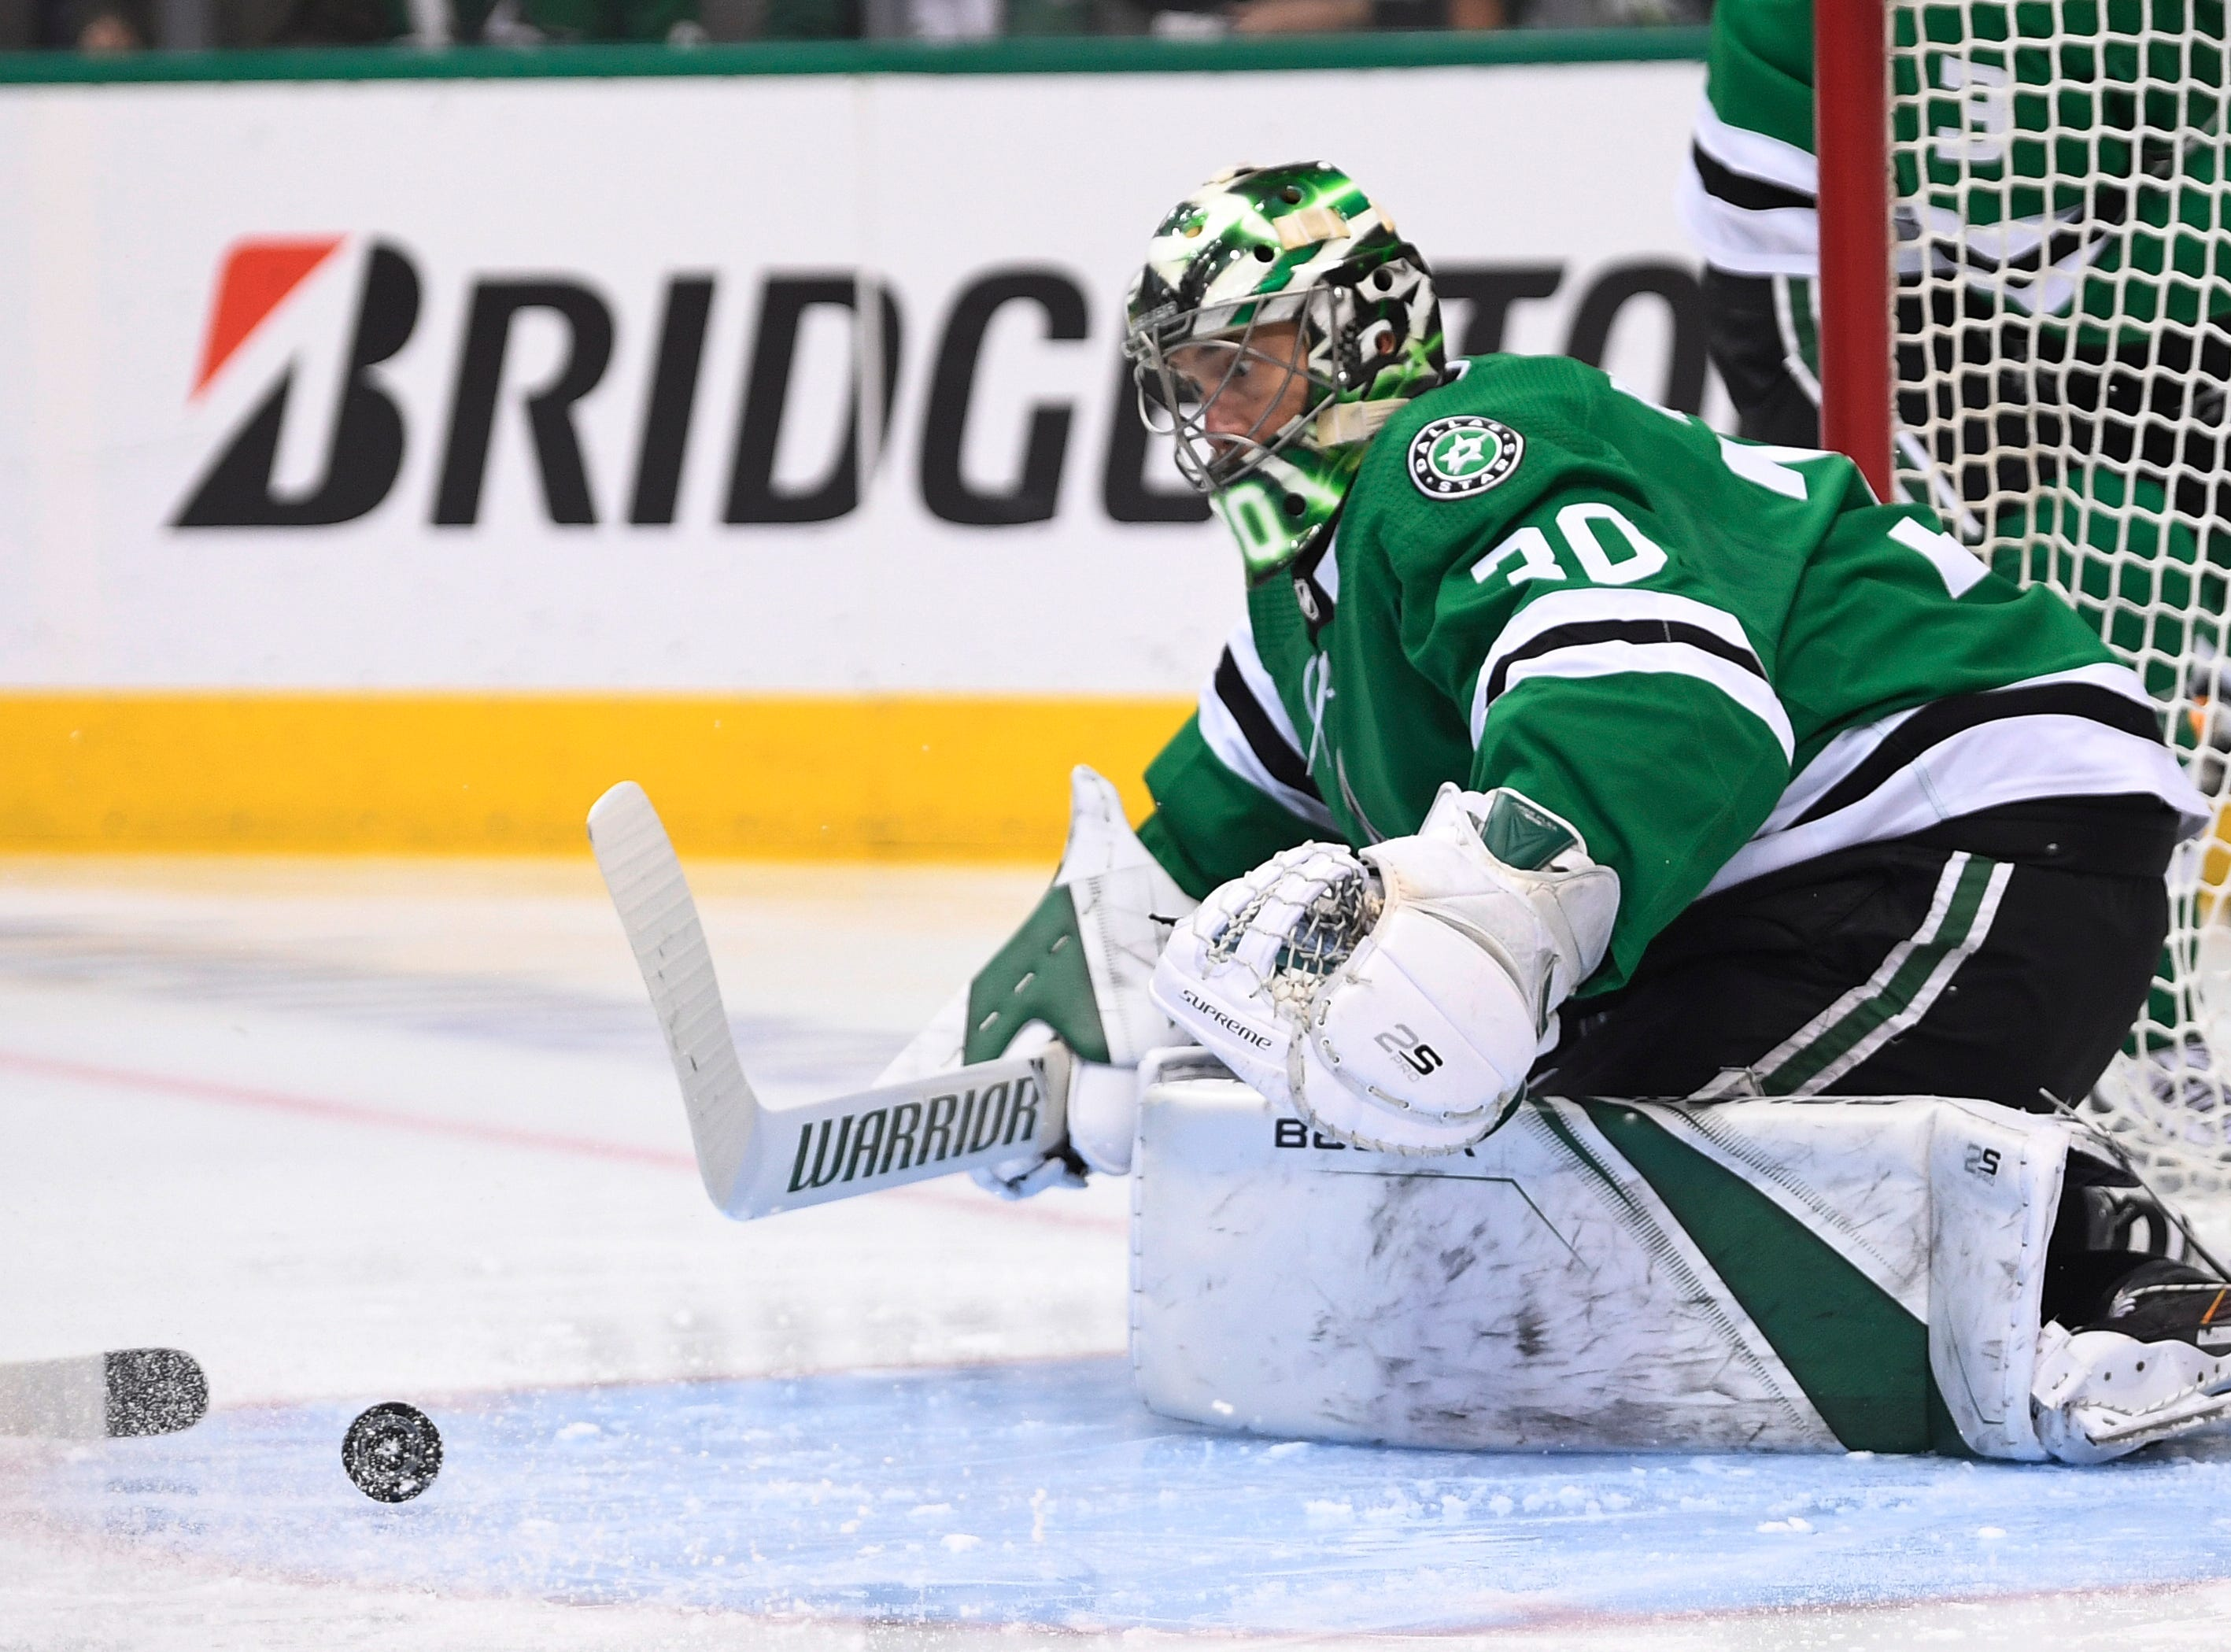 Dallas Stars goaltender Ben Bishop (30) defends the net against the Nashville Predators during the first period of the divisional semifinal game at the American Airlines Center in Dallas, Texas, Monday, April 22, 2019.